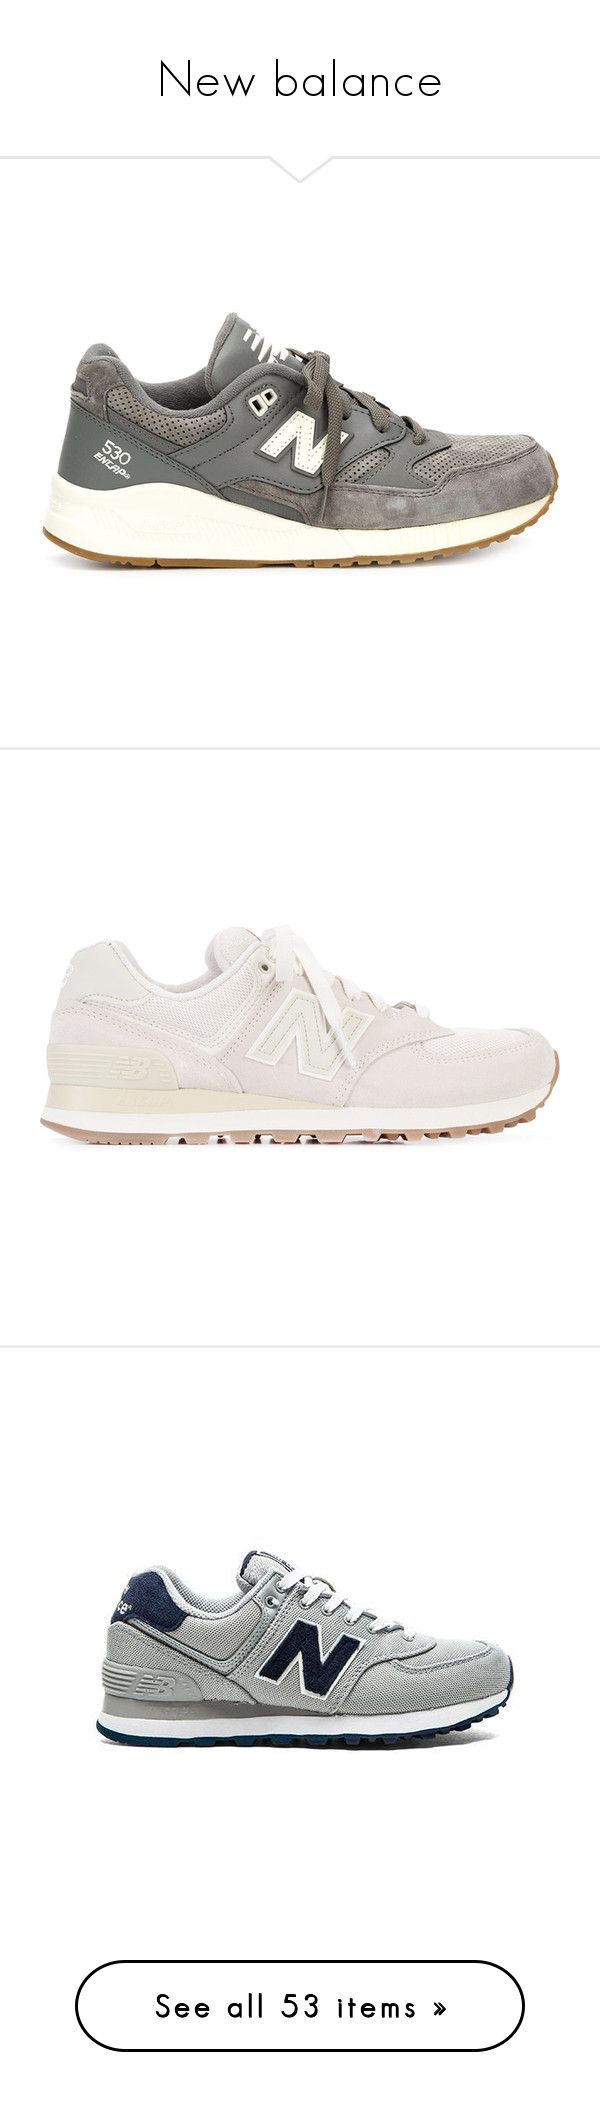 """New balance"" by petitaprenent ❤ liked on Polyvore featuring shoes, sneakers, grey, new balance sneakers, leather footwear, leather shoes, grey shoes, grey leather shoes, new balance trainers and flats sneakers"